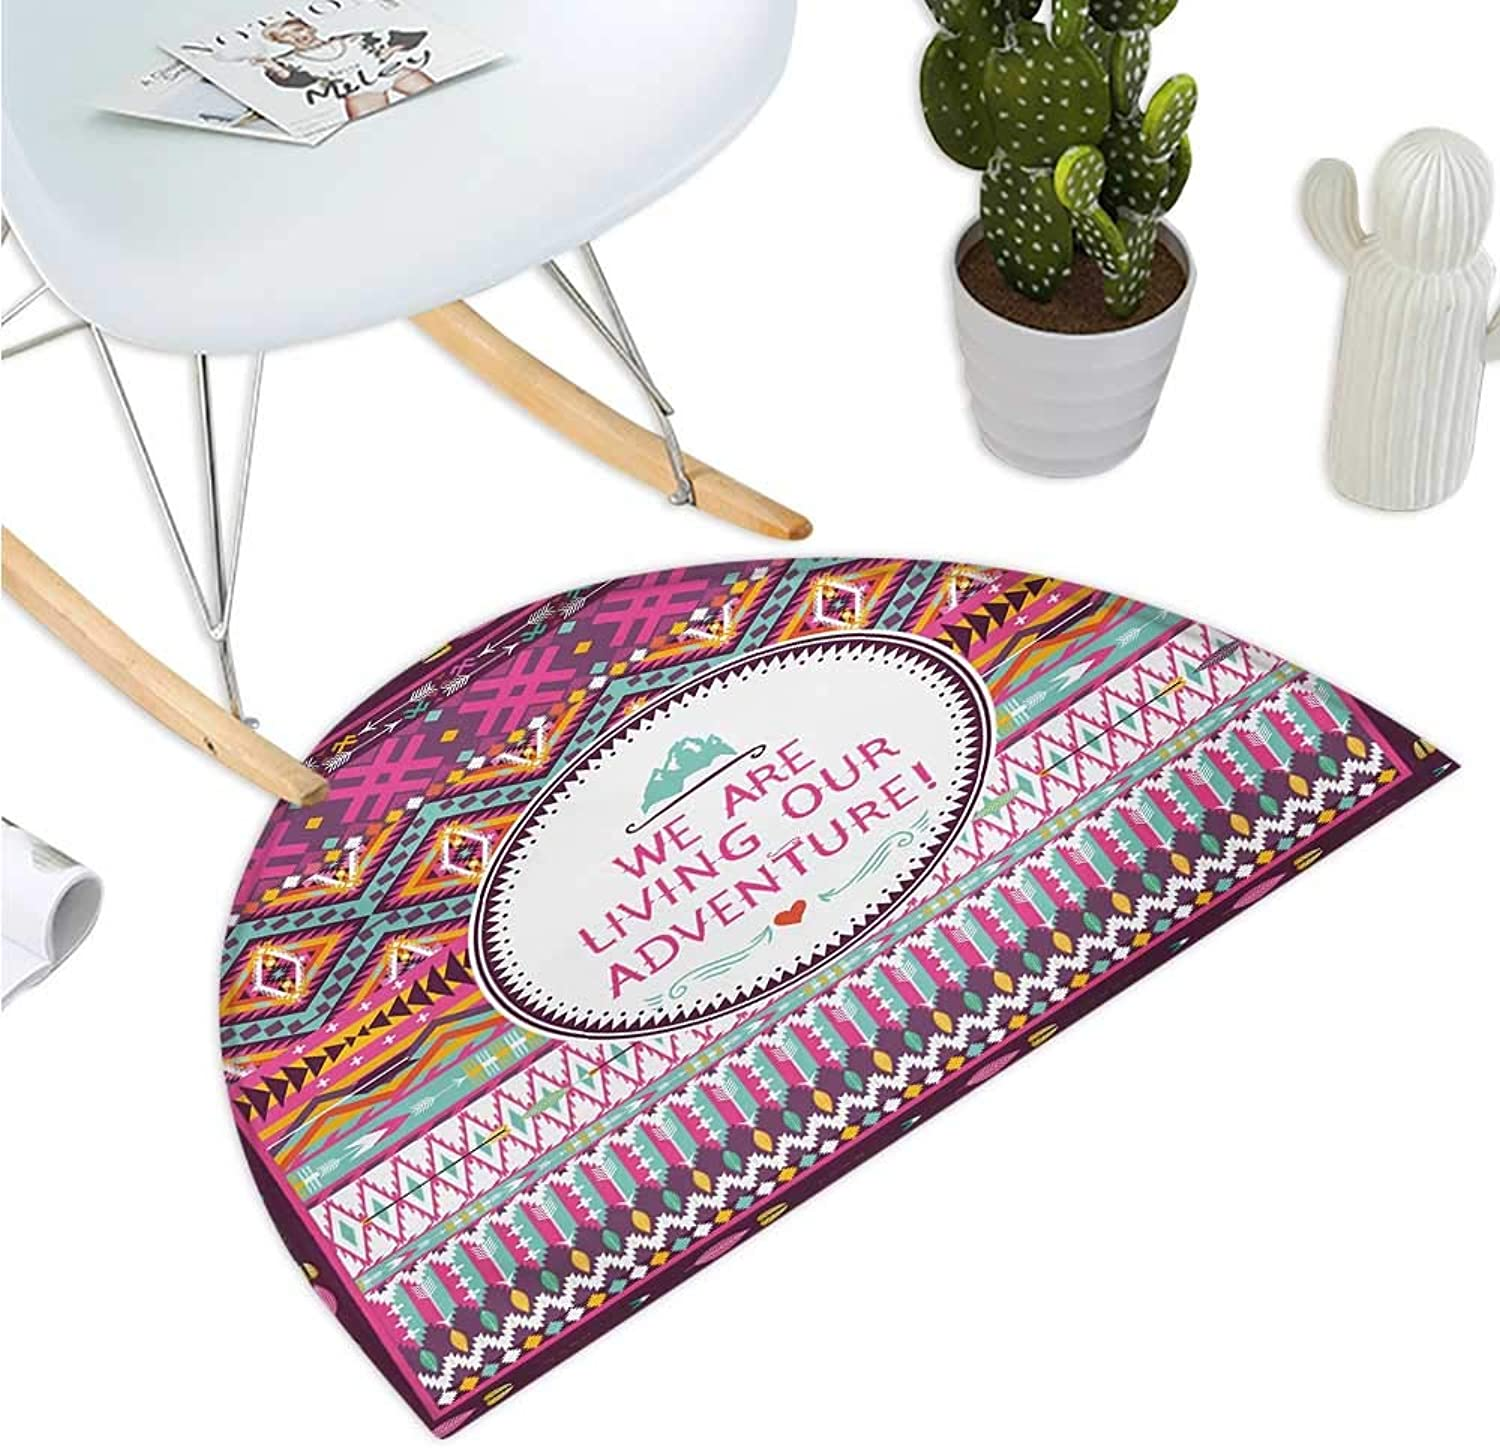 Ethnic Semicircular Cushion Tribal Striped Geometrical Design with a Quote We are Living Our Adventure Print Entry Door Mat H 43.3  xD 64.9  Multicolor